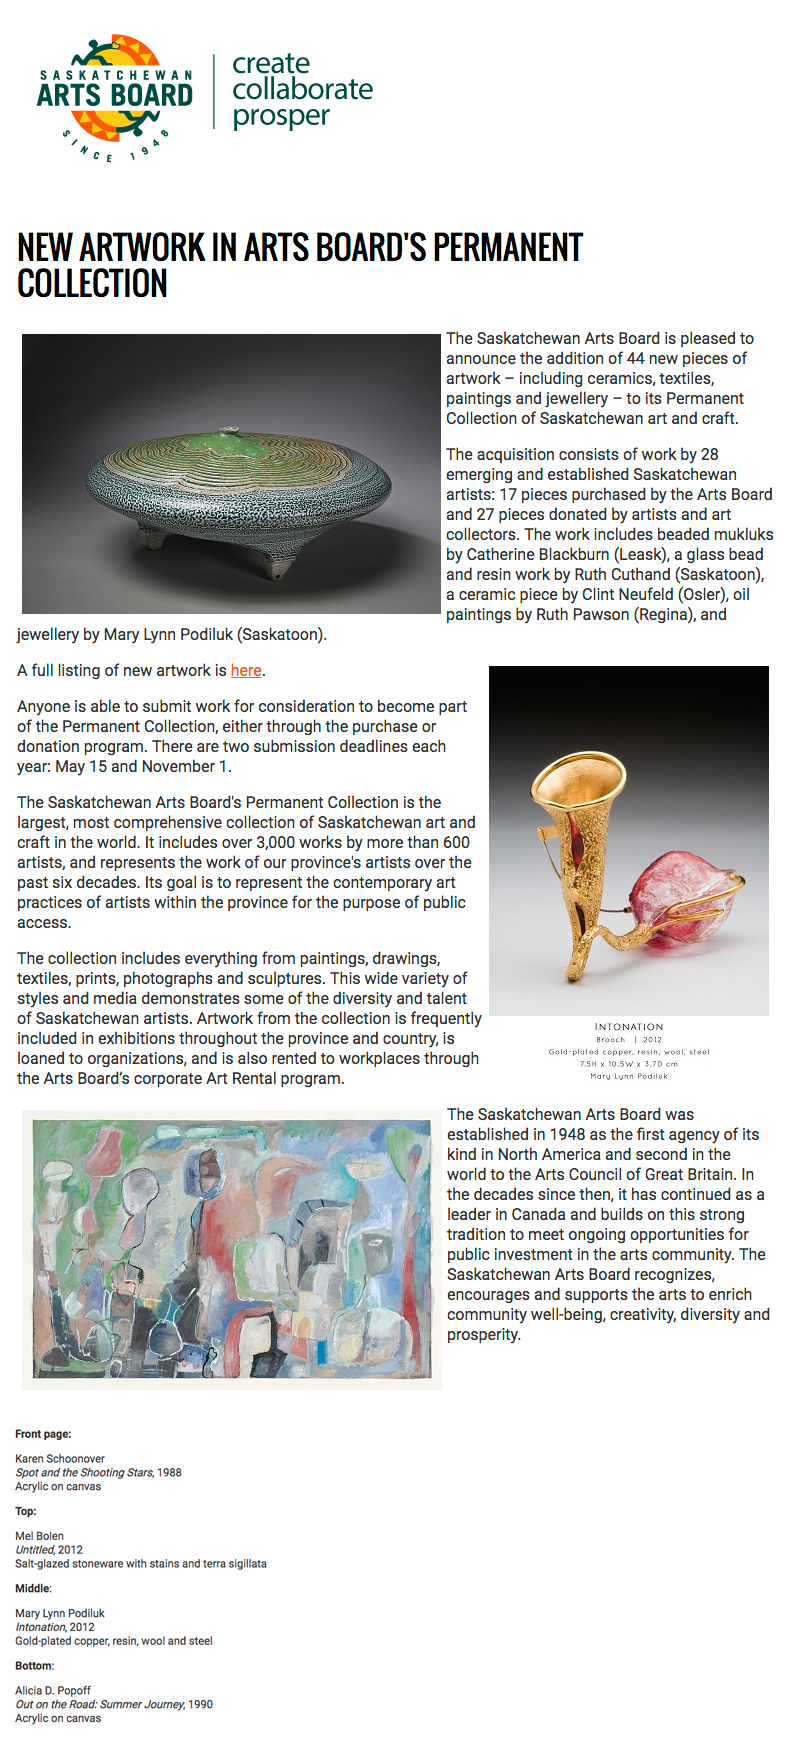 """New Artwork in Arts Board's Permanent Collection""   . Saskatchewan Arts Board Feature. 3 Aug 2016. Web."